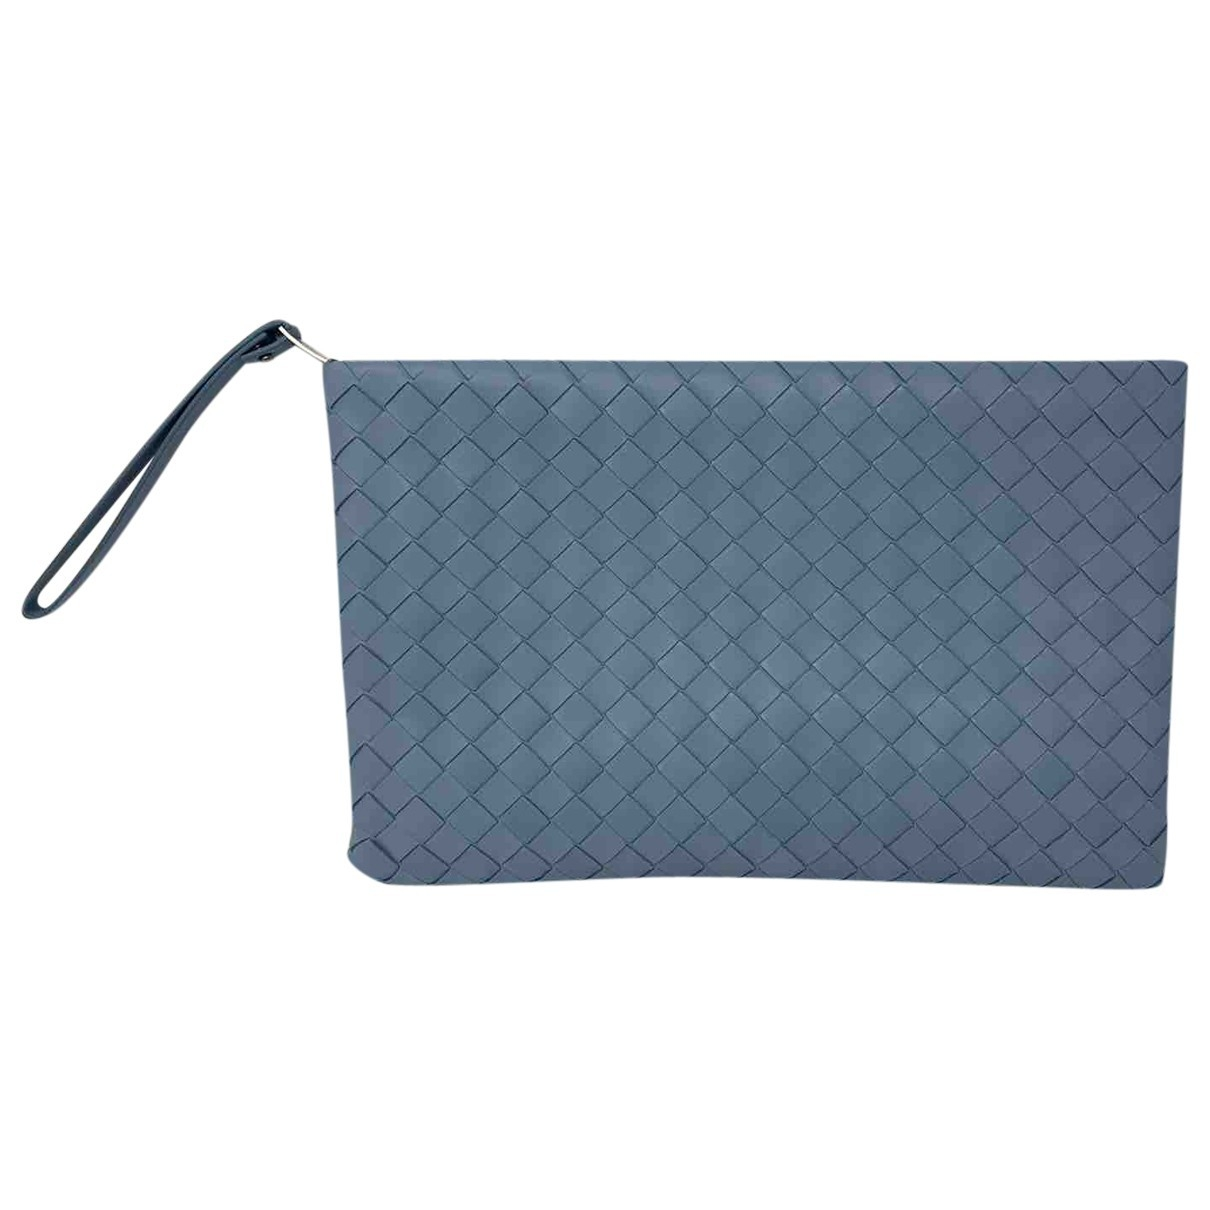 Bottega Veneta Veneta Clutch in  Blau Leder